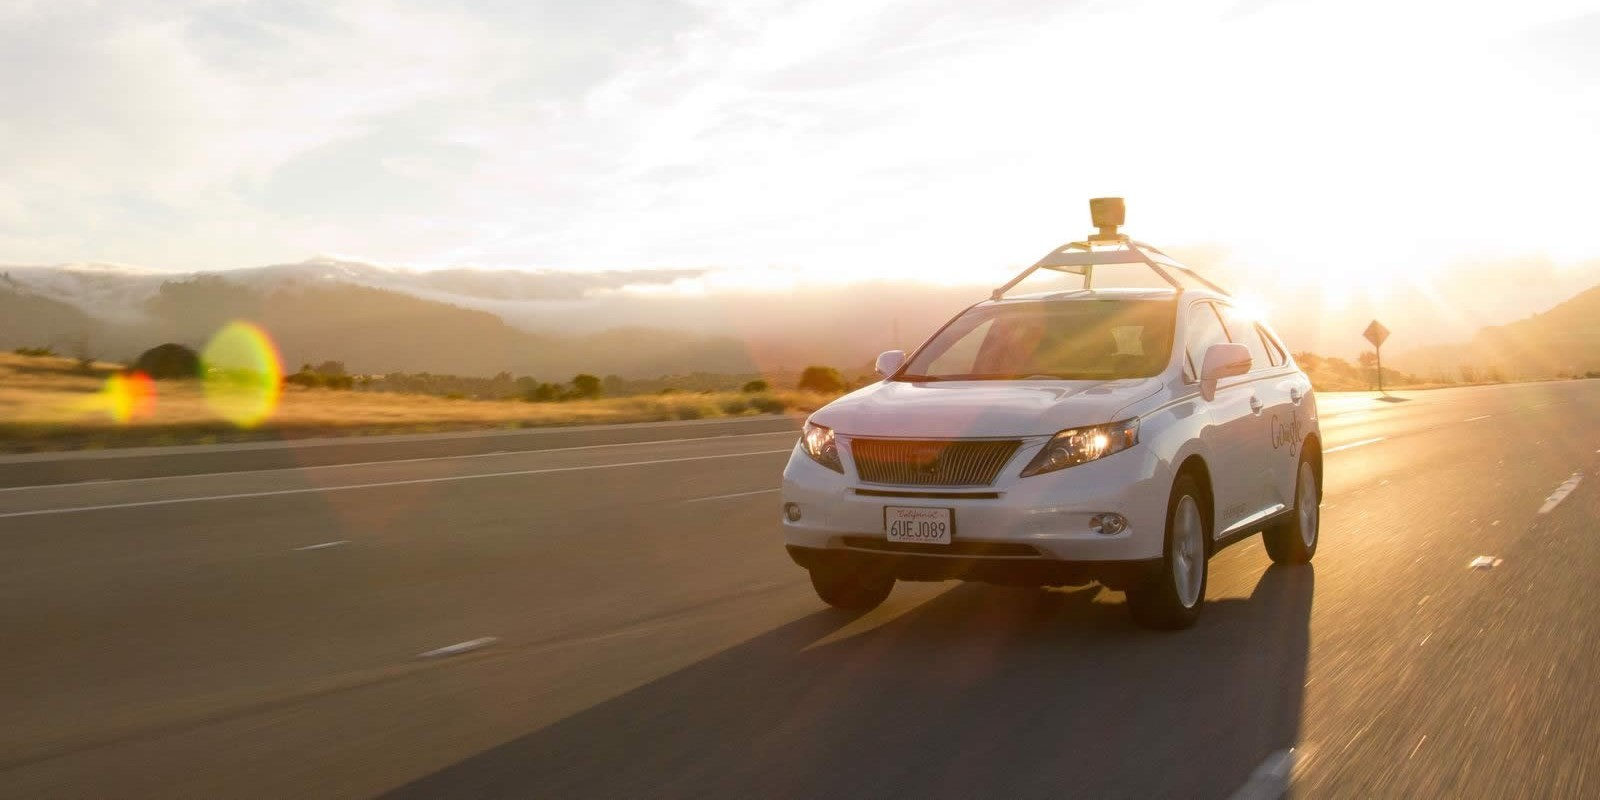 Google Car Gets In Accident With Human Driving